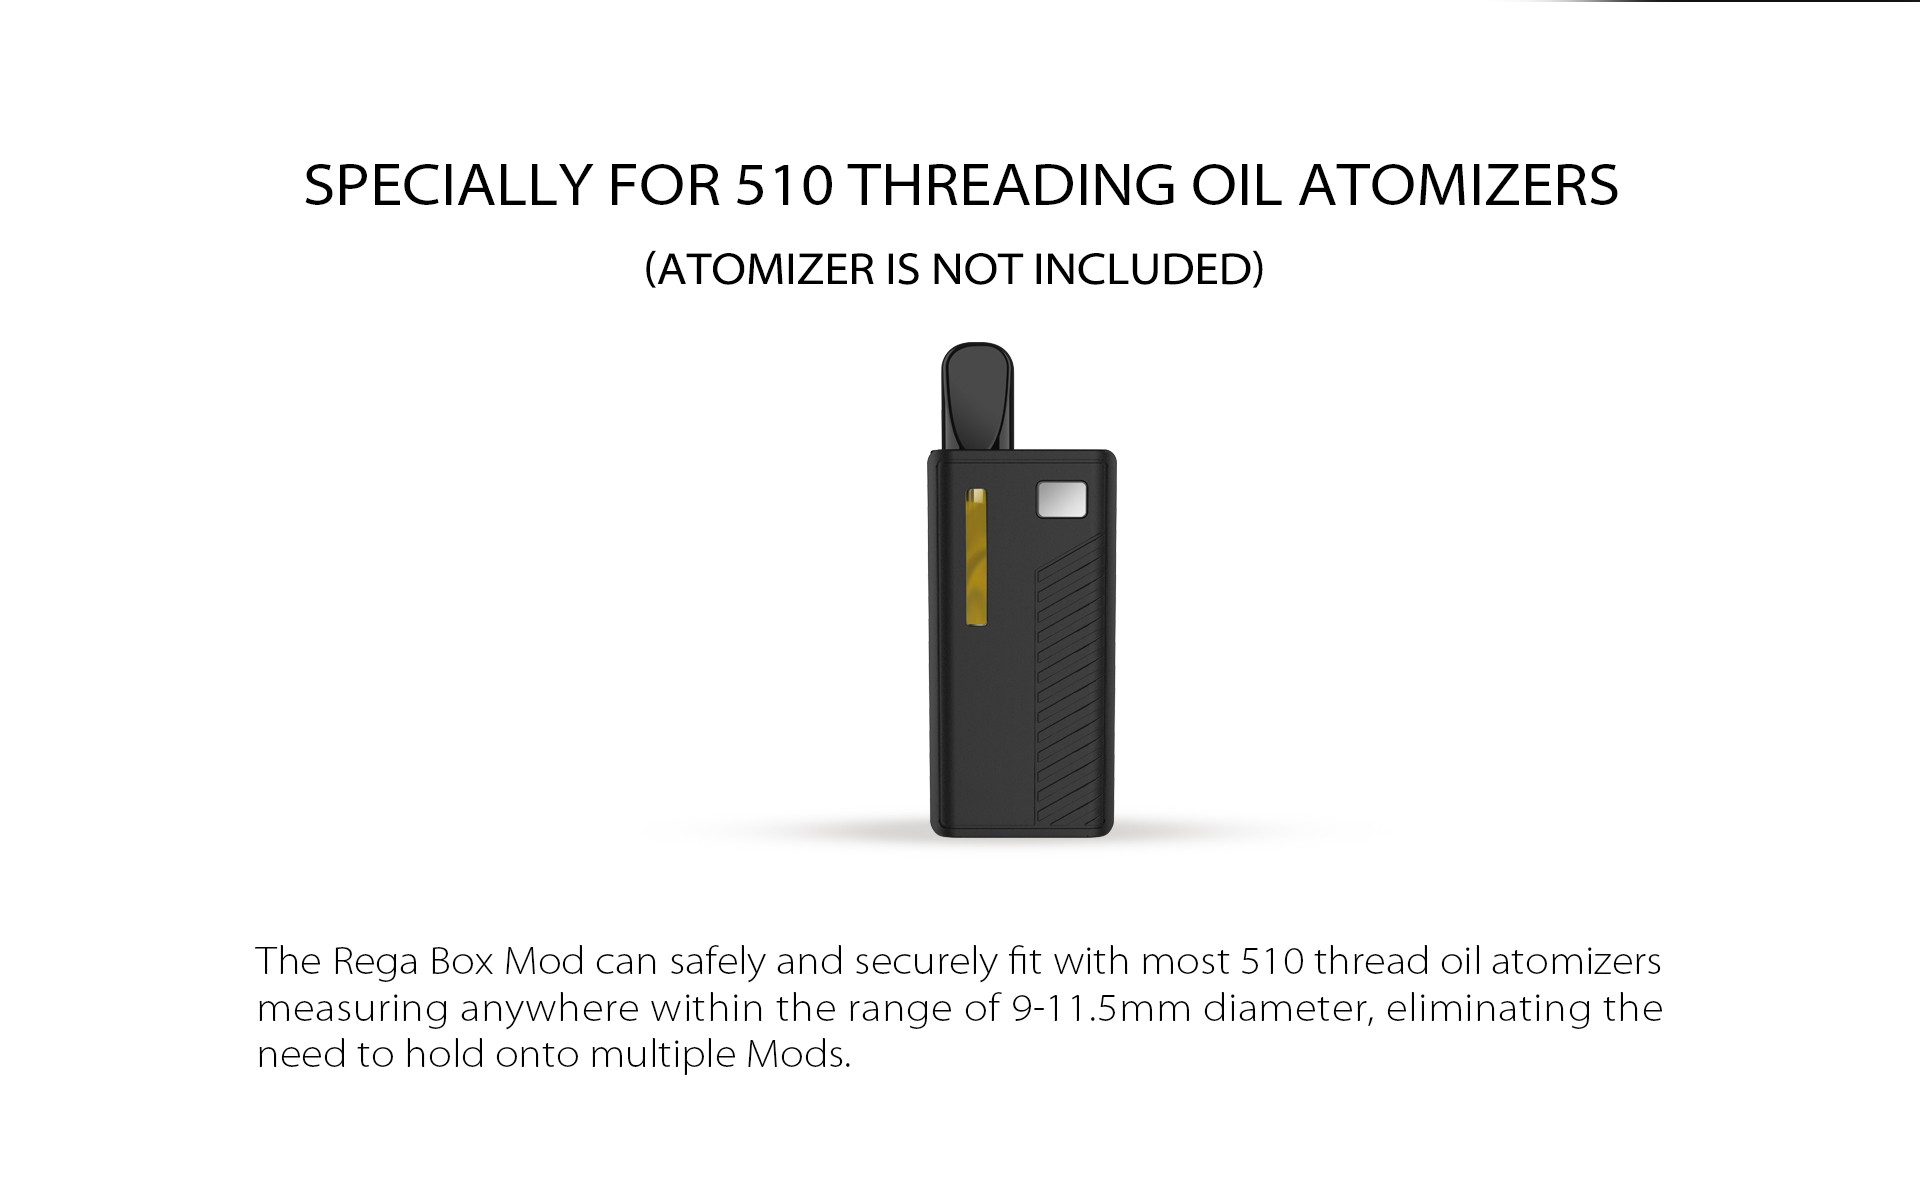 The Rega Box Mod can safely and securely fit with most 510 thread oil atomizers measuring anywhere within the range of 9-11.5mm diameter, eliminating the need to hold onto multiple Mods.